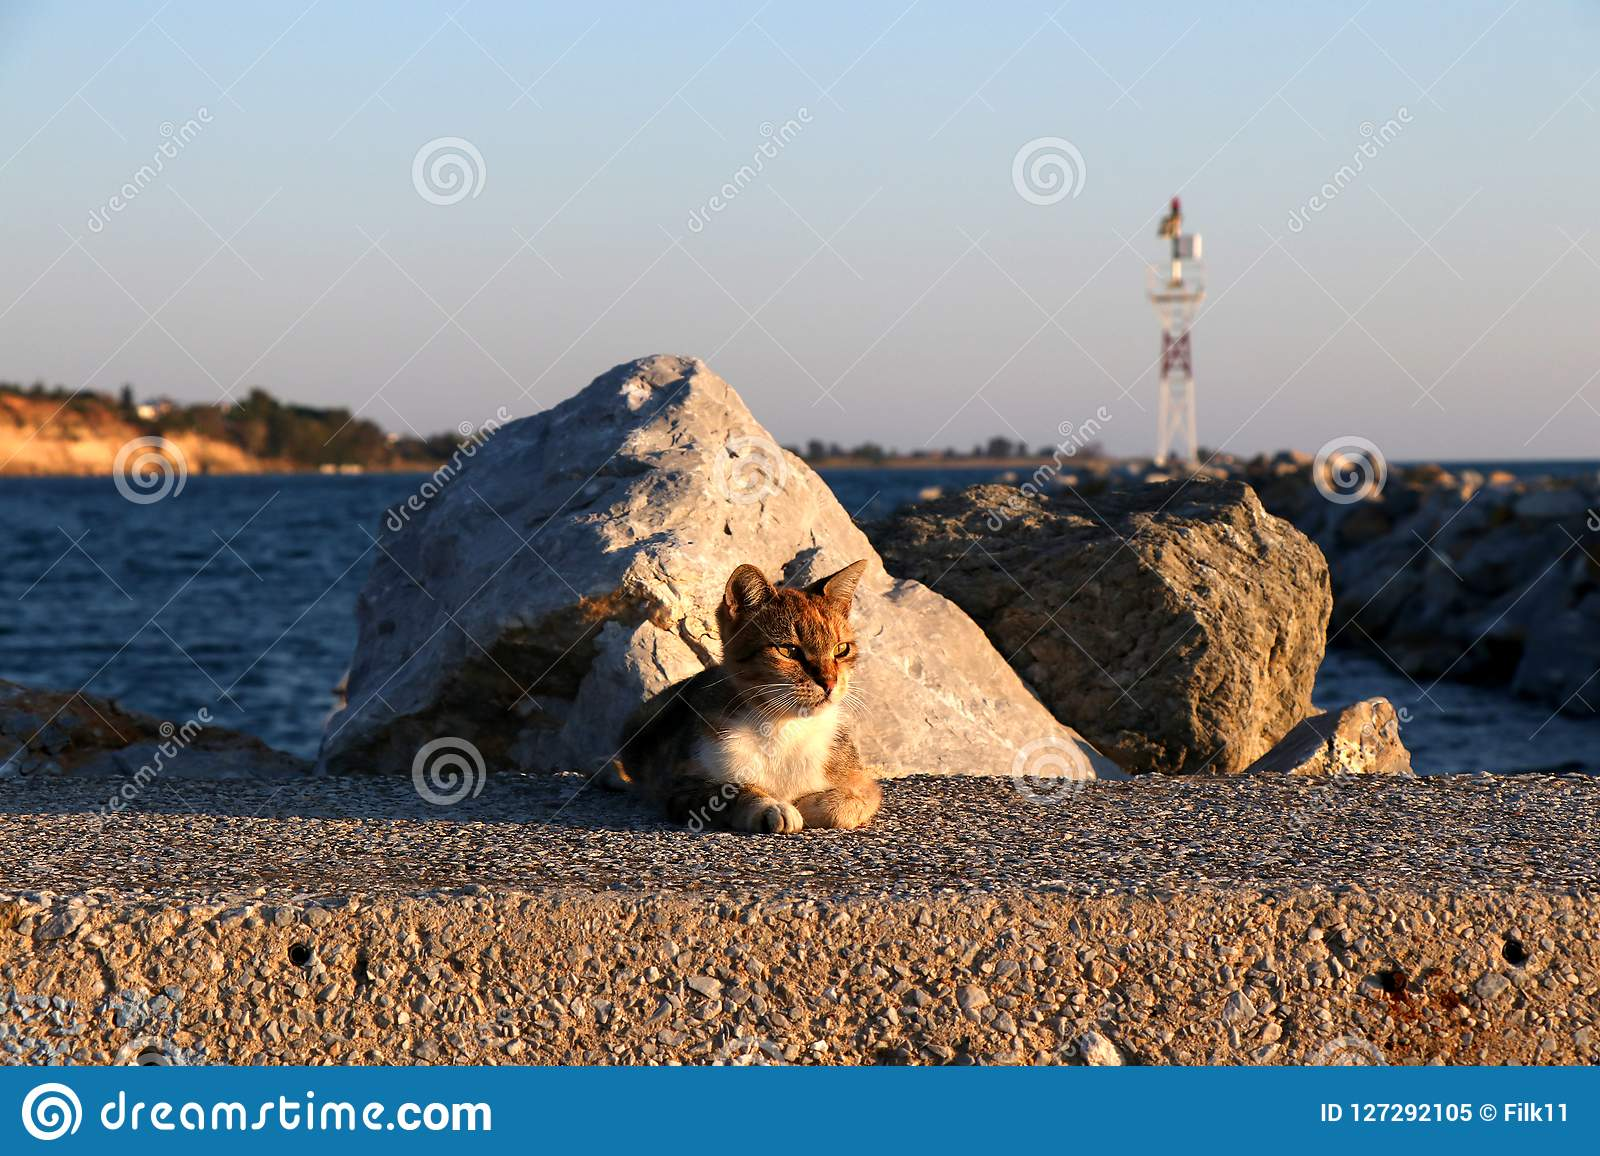 Lighthouse Background Cute Cat Sitting On The Harbor Rocks And Lighthouse Background